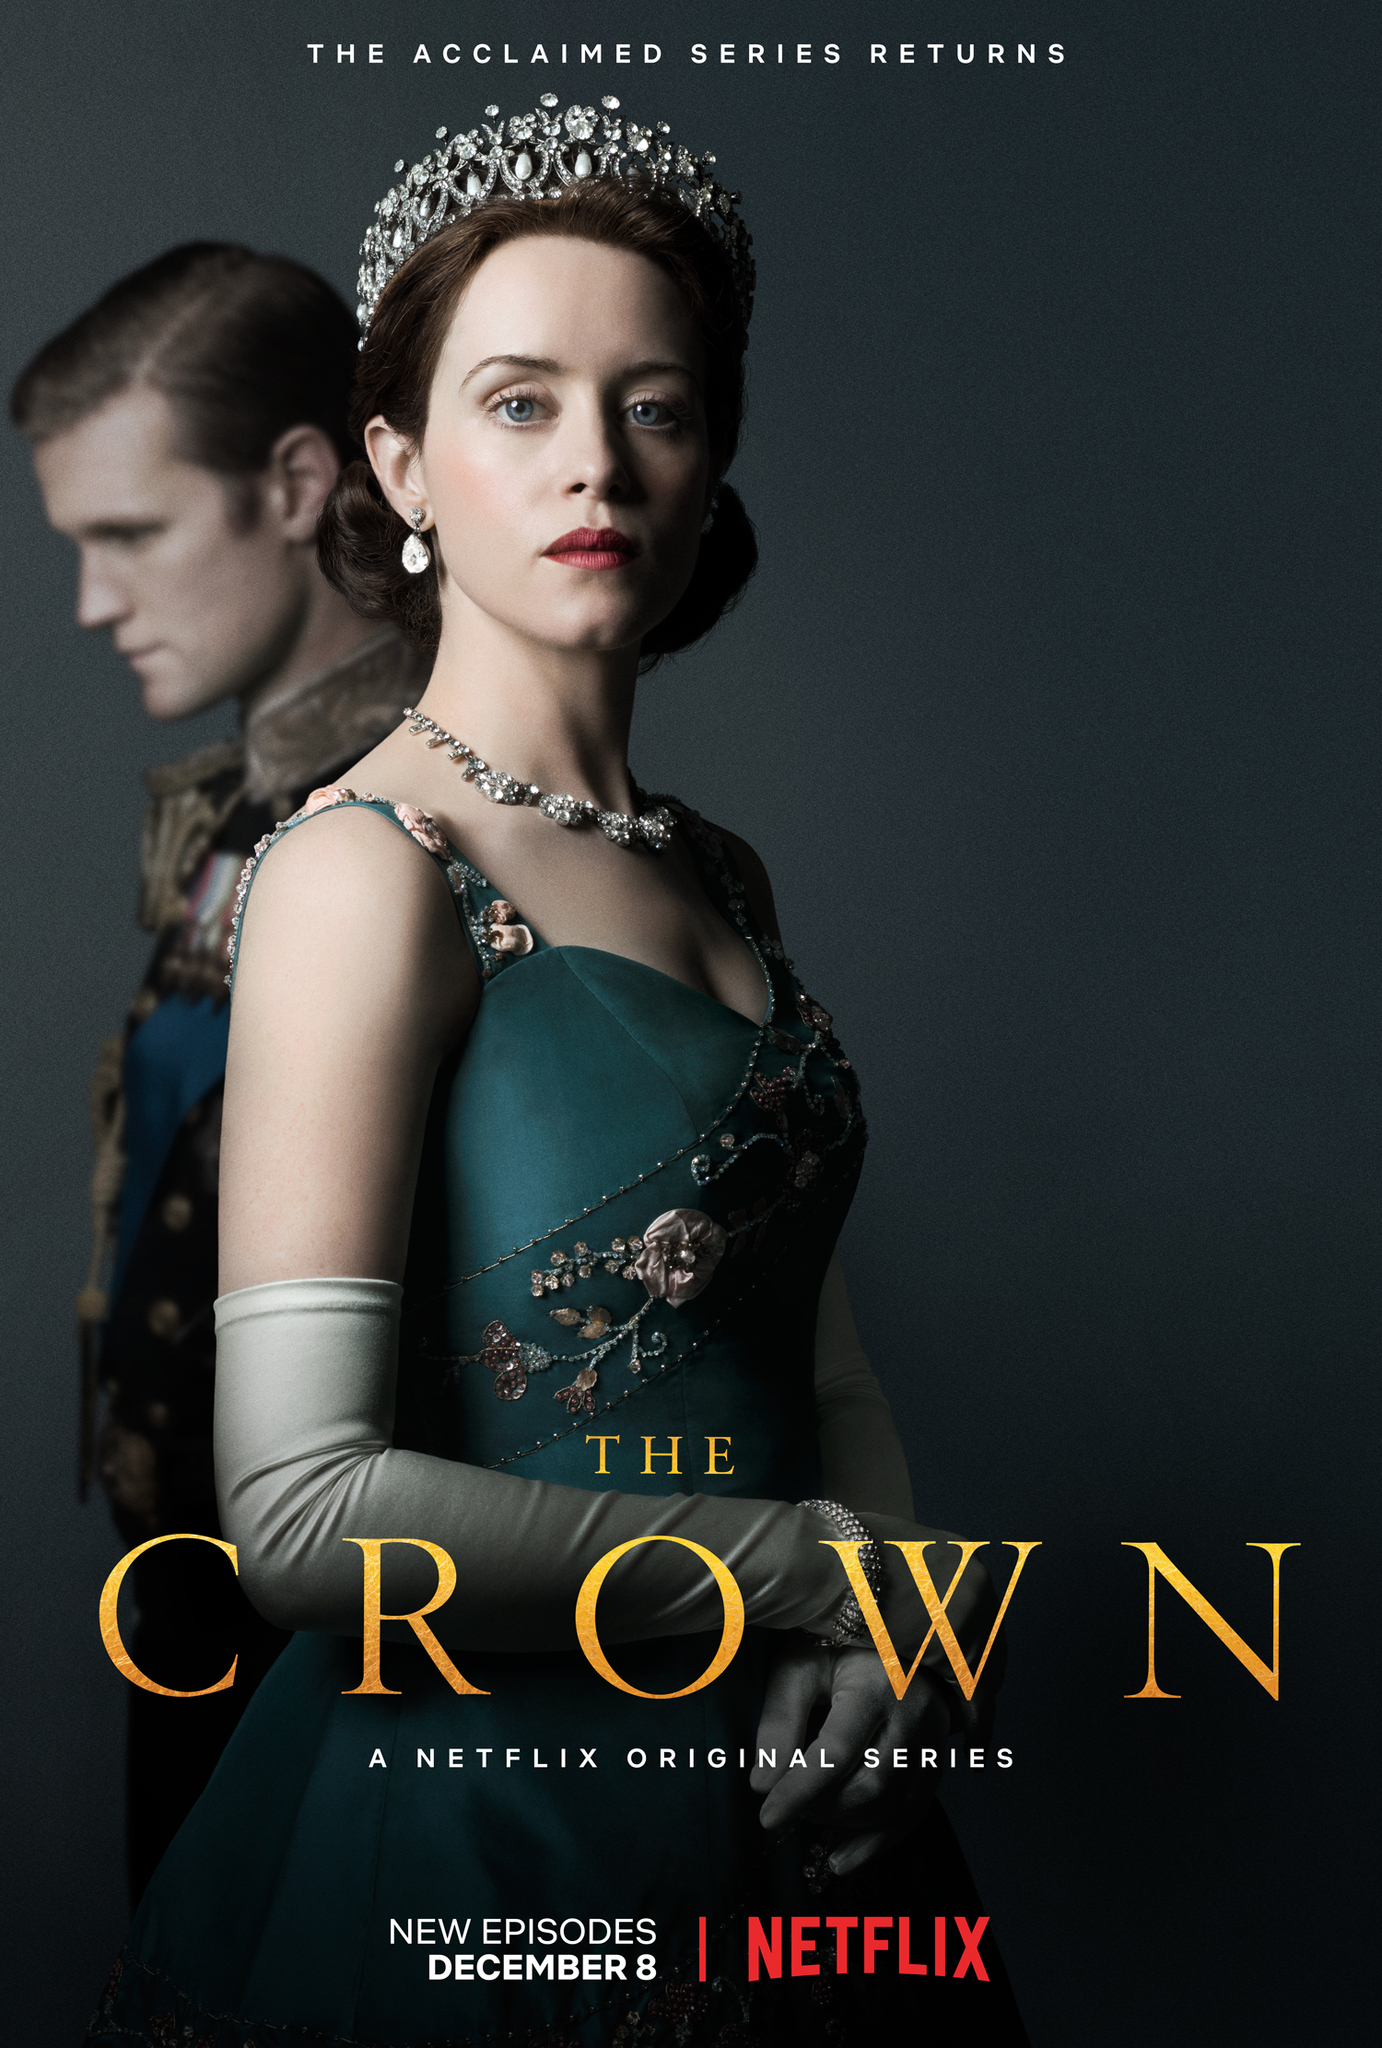 The.Crown.S02E03.iNTERNAL.MULTi.1080p.WEB.x264-CiELOS